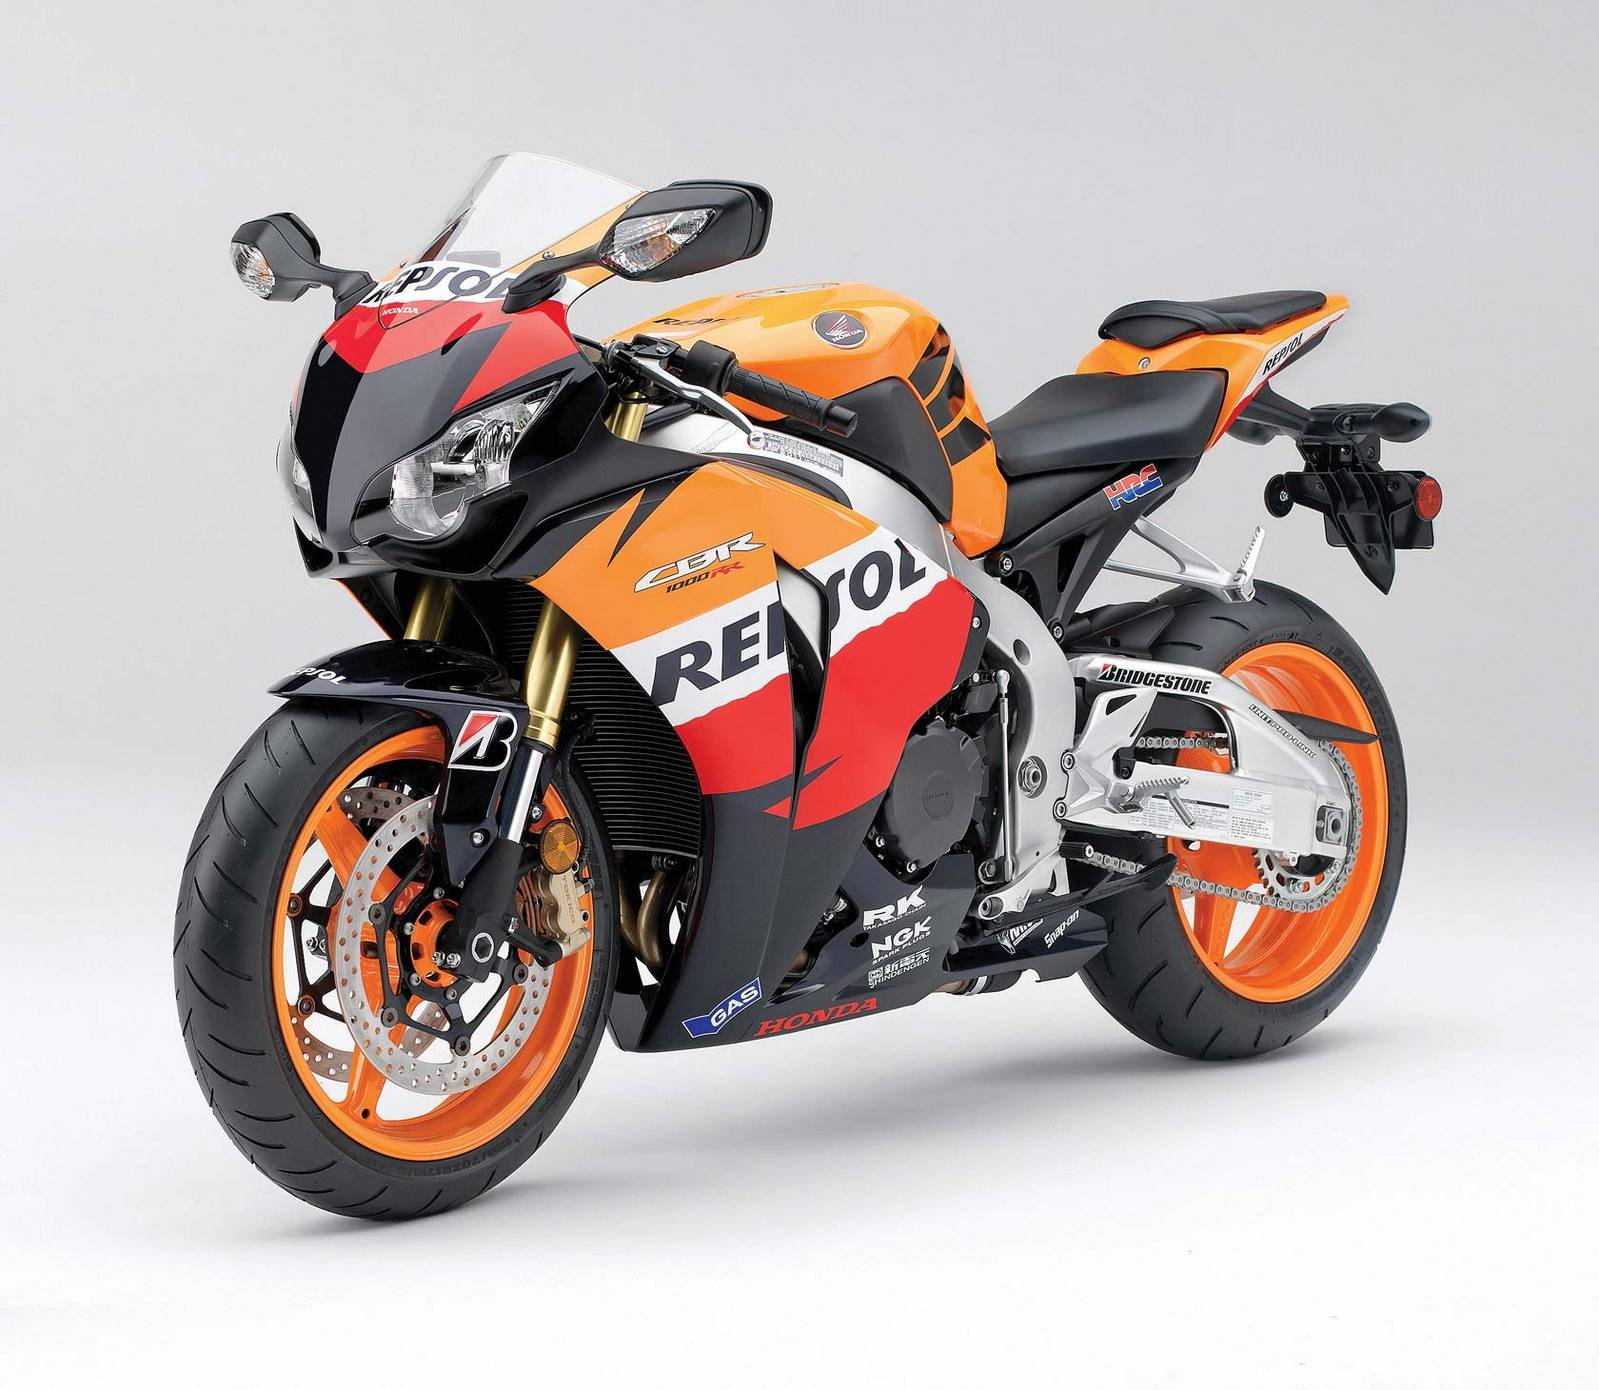 2012 Honda CBR 150 R Repsol Edition Pictures, Photos